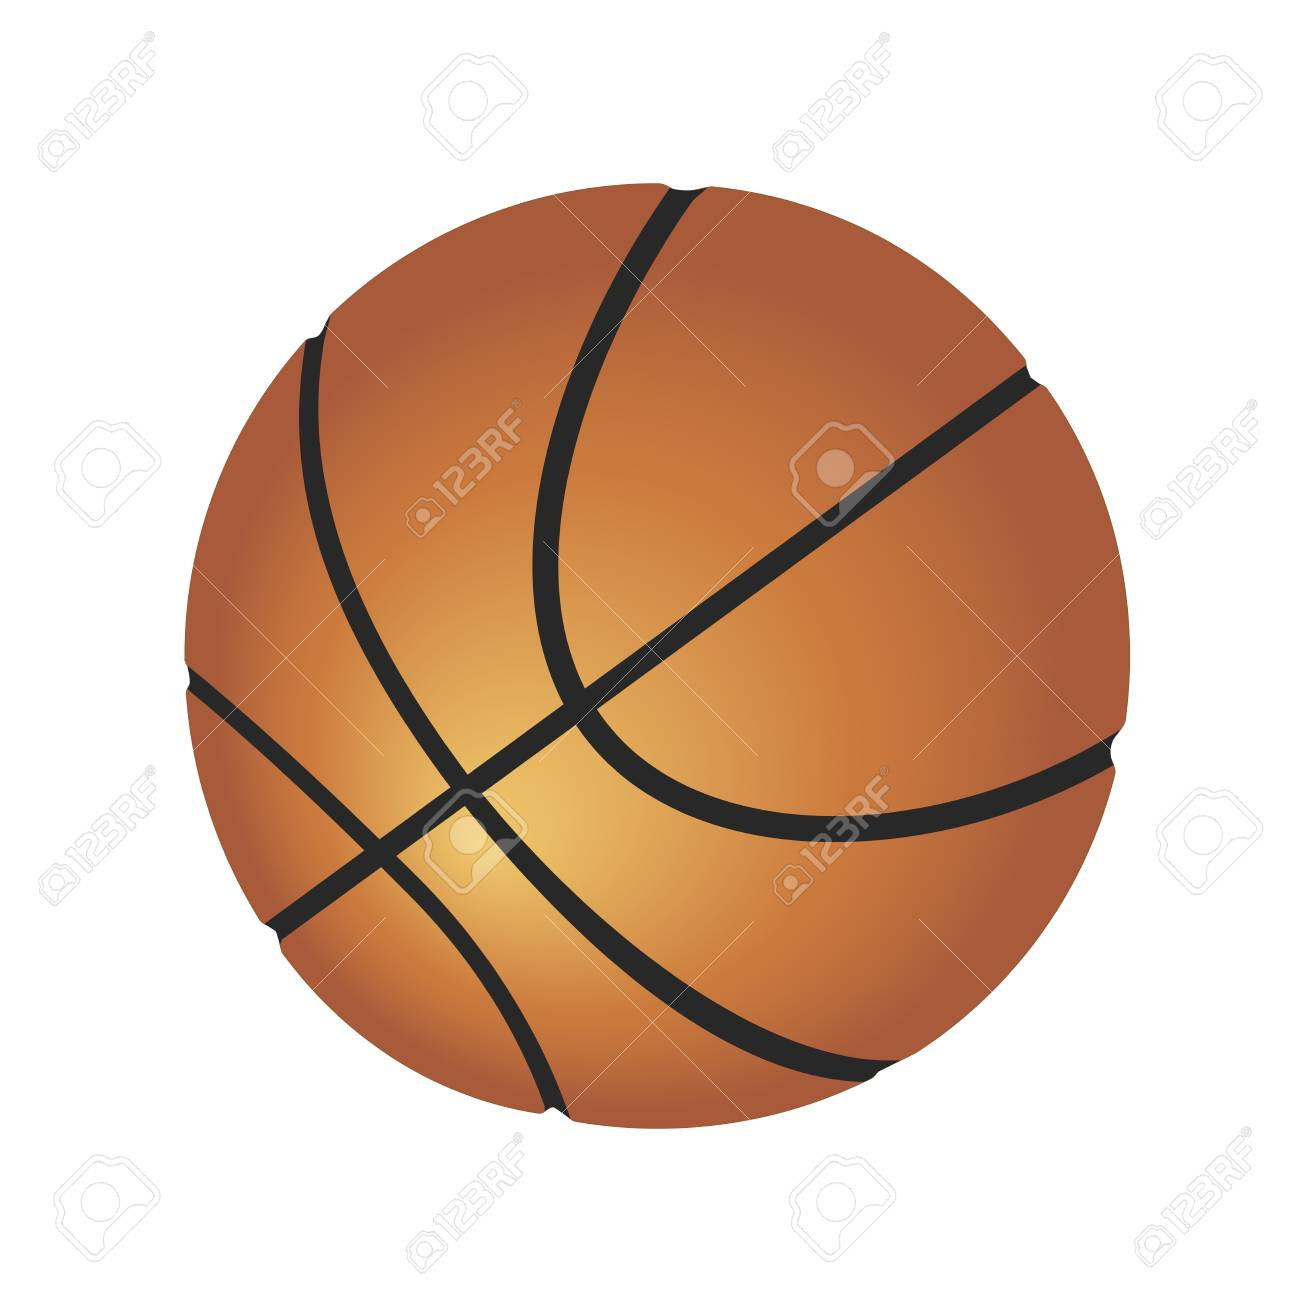 Ball For Playing Basketball Vector Illustration Isolated On White